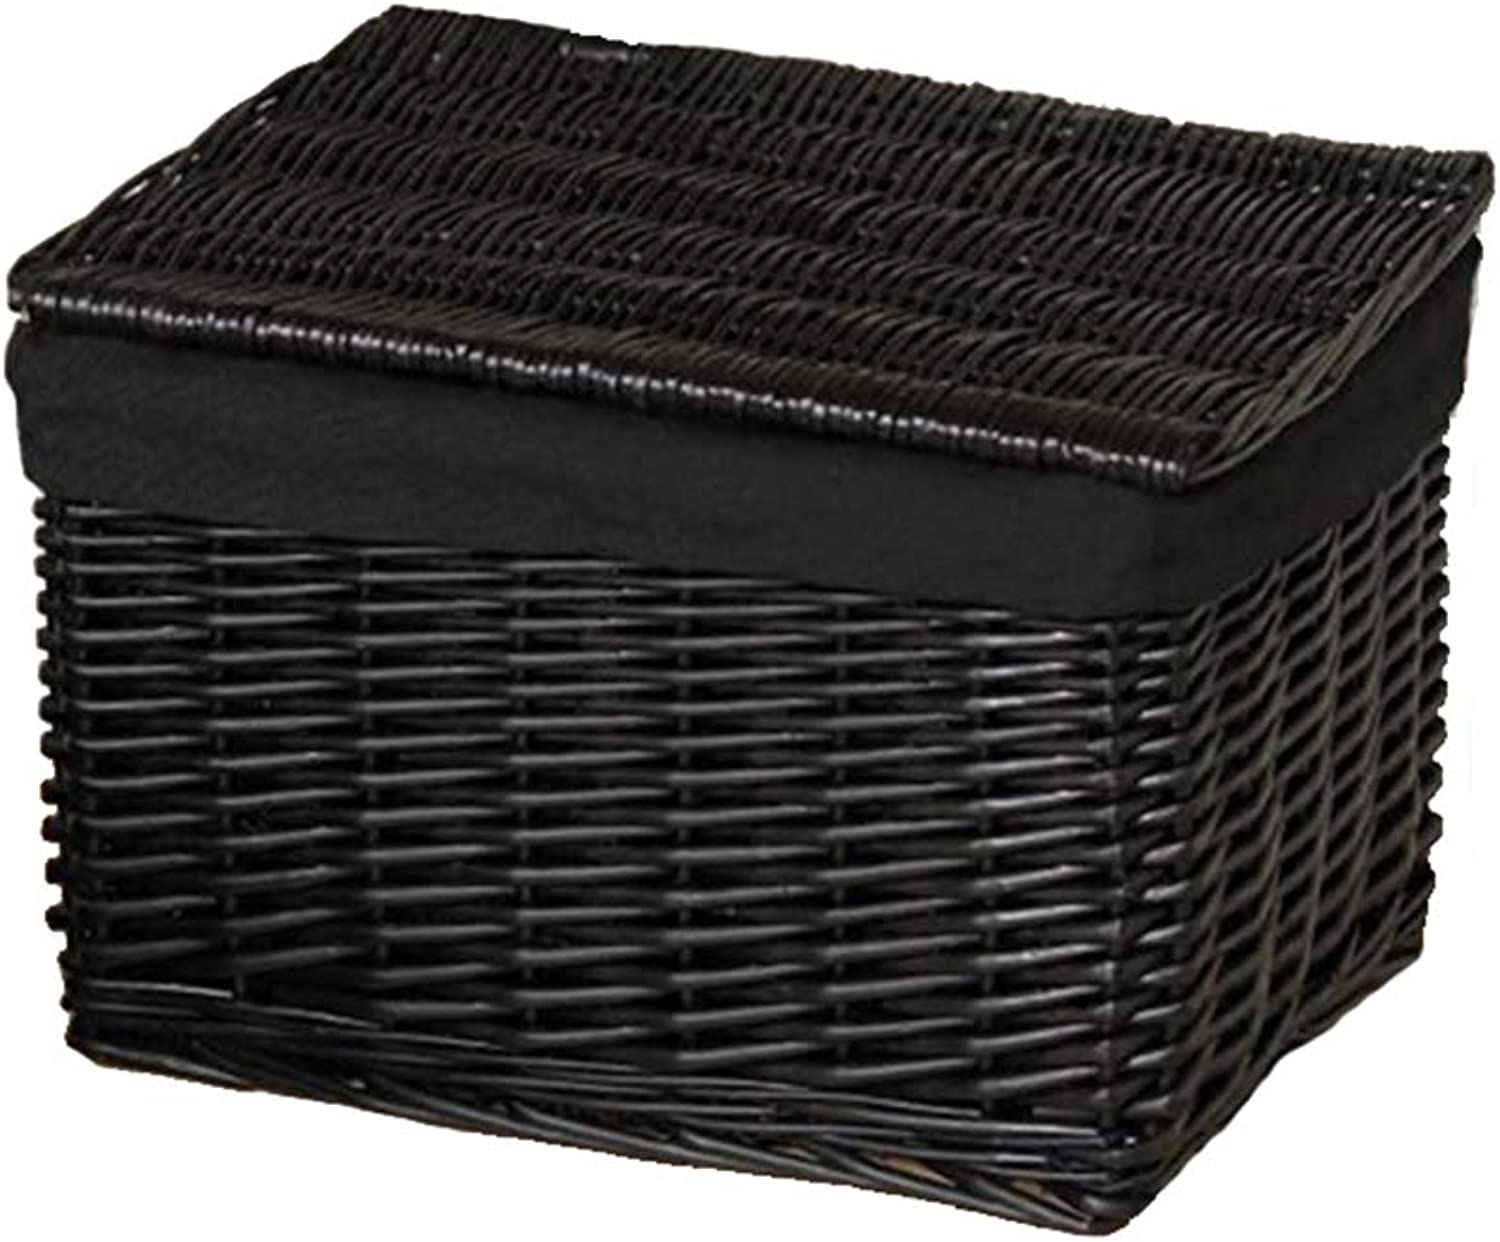 Laundry Hamper Storage Boxes Extra Large with Lid Rattan Storage Basket Clothes Storage Storage Box Rural Wind ZHANGQIANG (color   Black-Black, Size   52  34  35cm)